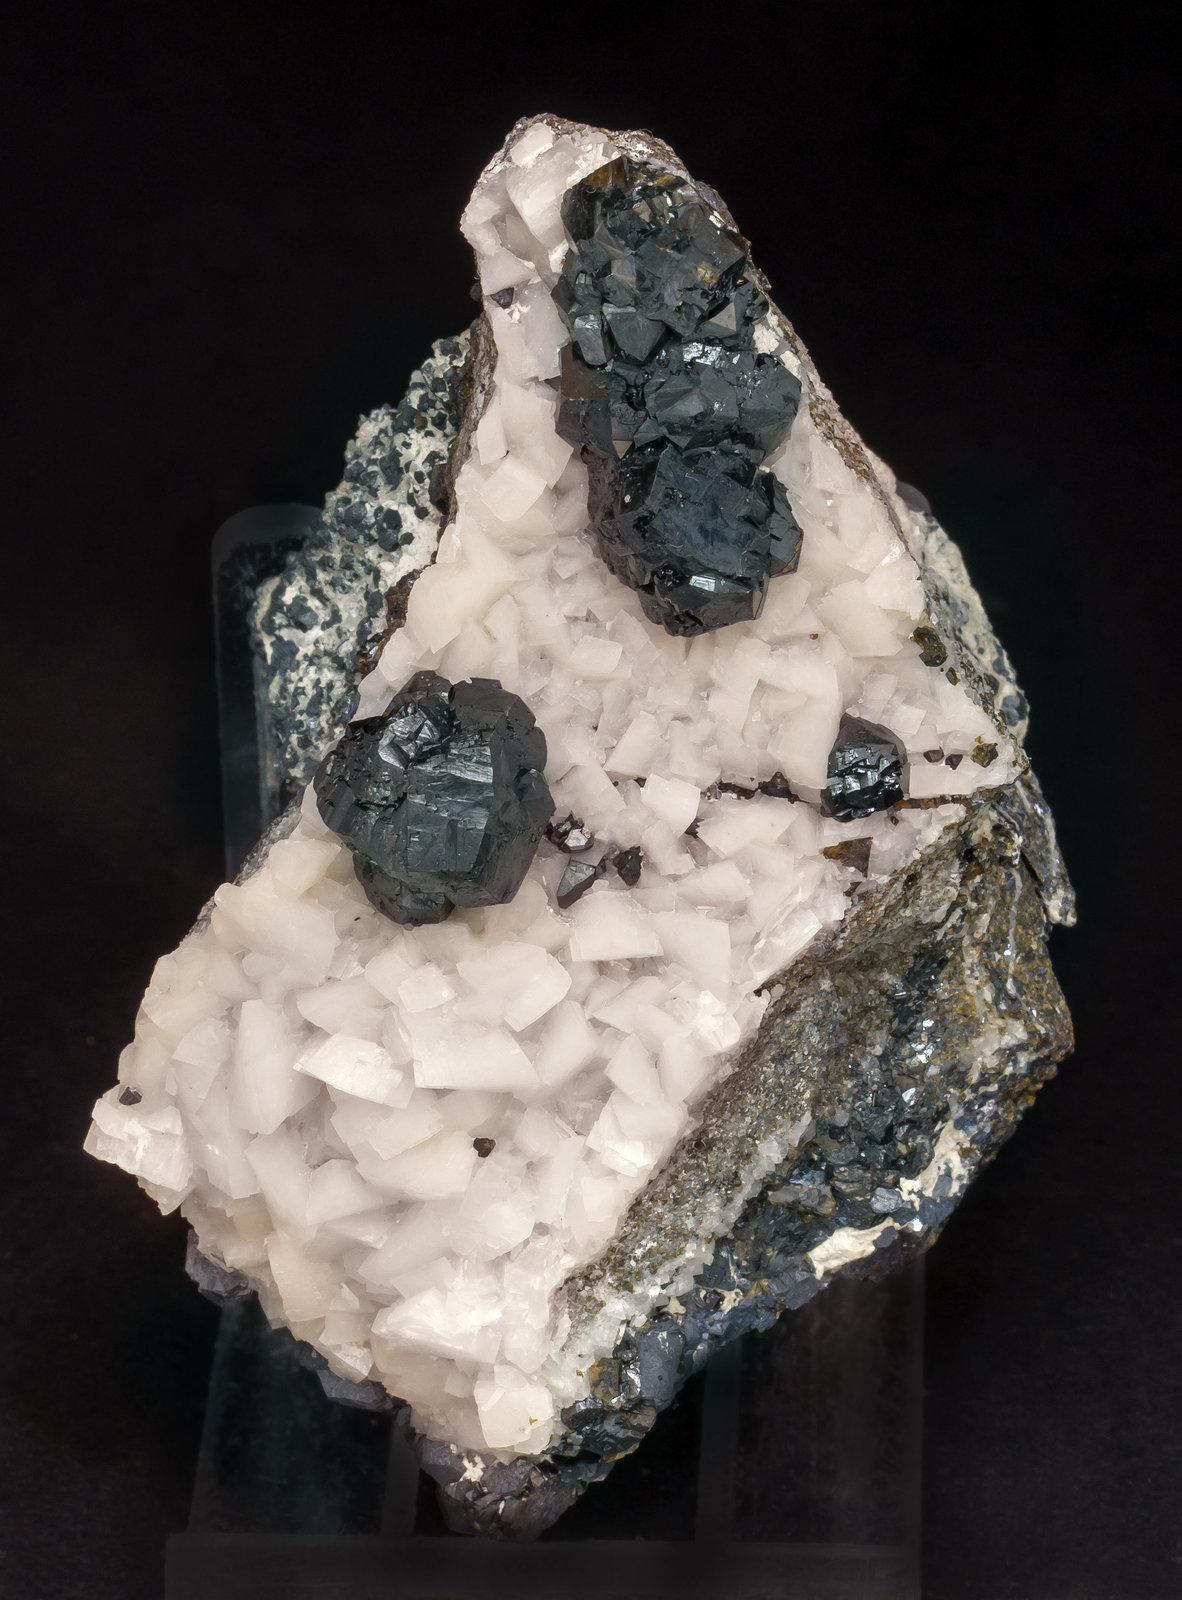 specimens/s_imagesAM1/Sphalerite-ET16AM1f.jpg